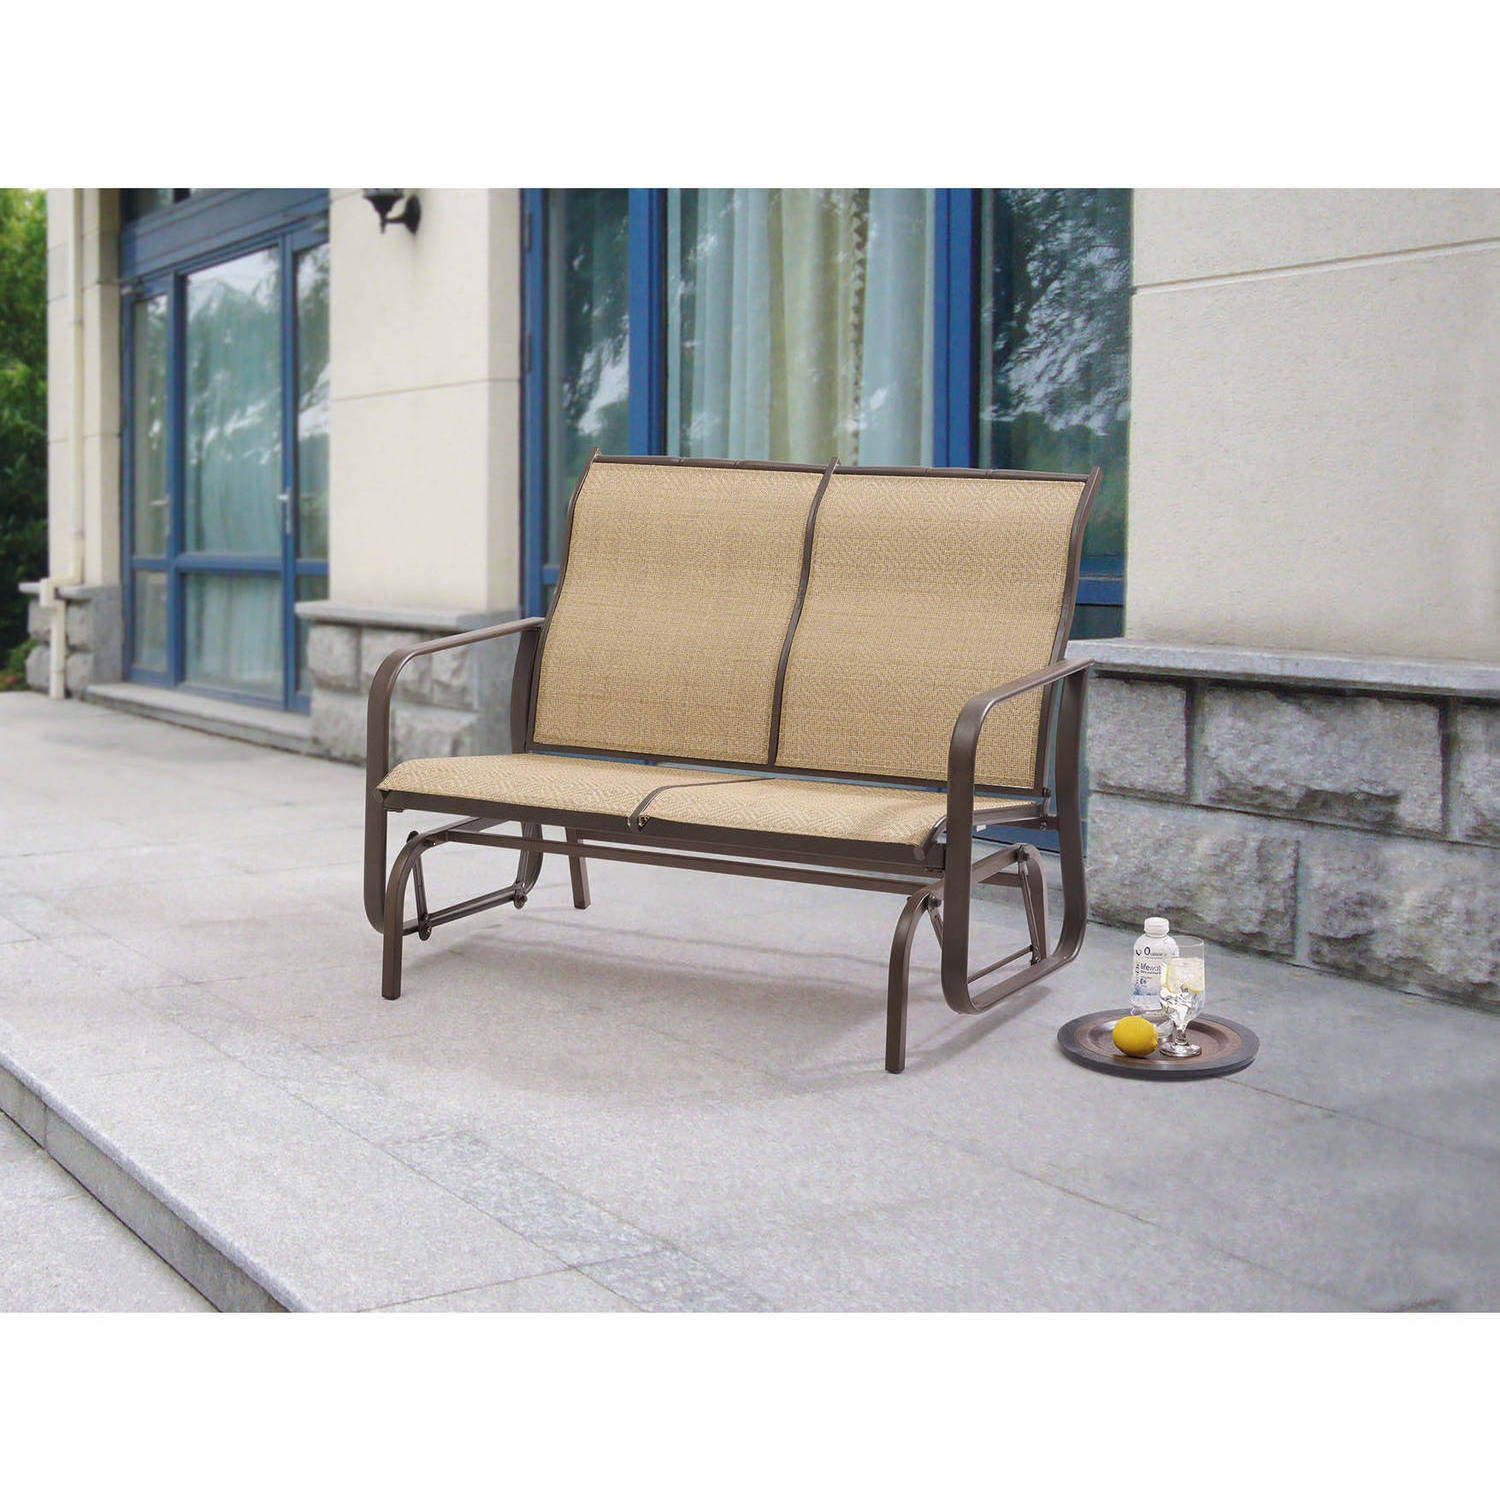 Mainstays Wesley Creek 2 Seat Outdoor Sling Seat Glider Throughout Metal Powder Coat Double Seat Glider Benches (View 22 of 25)